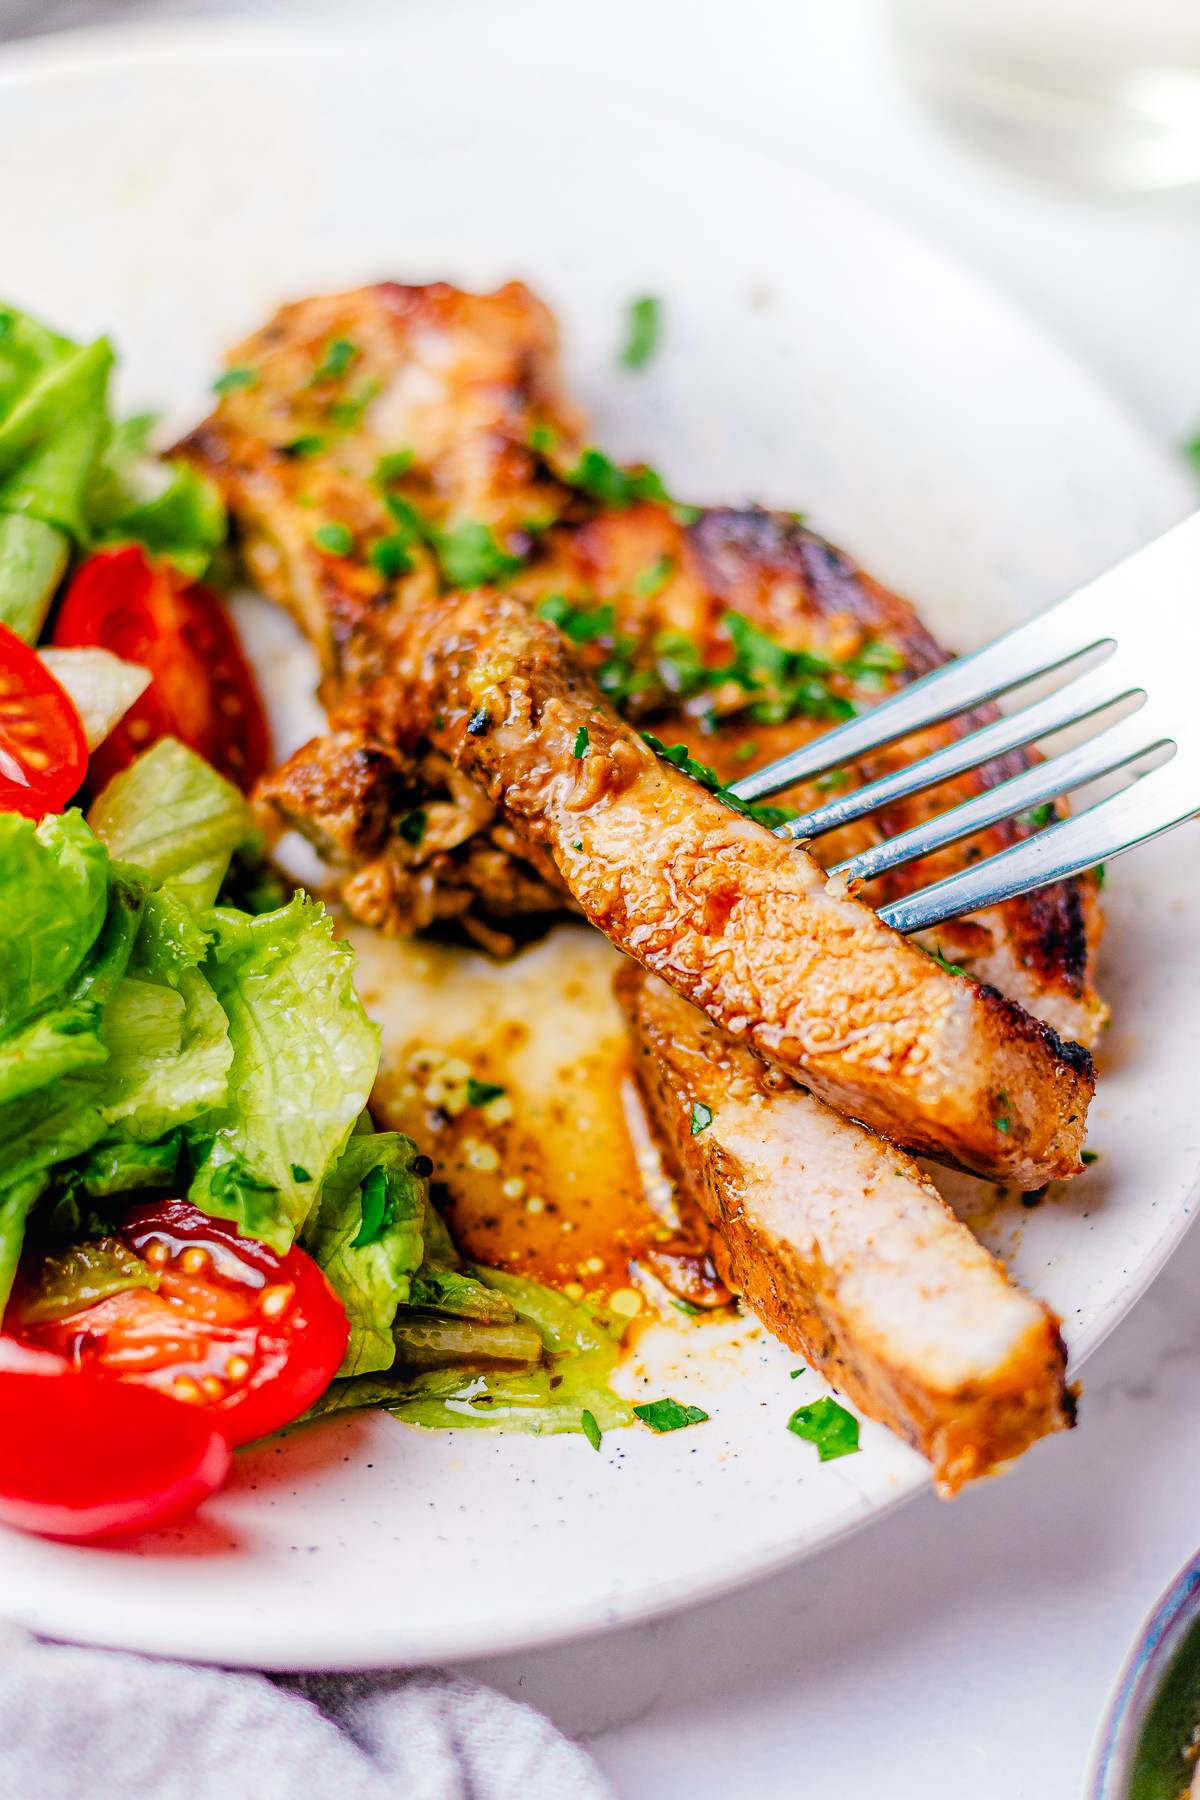 One cut Herb Marinated Grilled Pork Chop Recipe on plate with fork